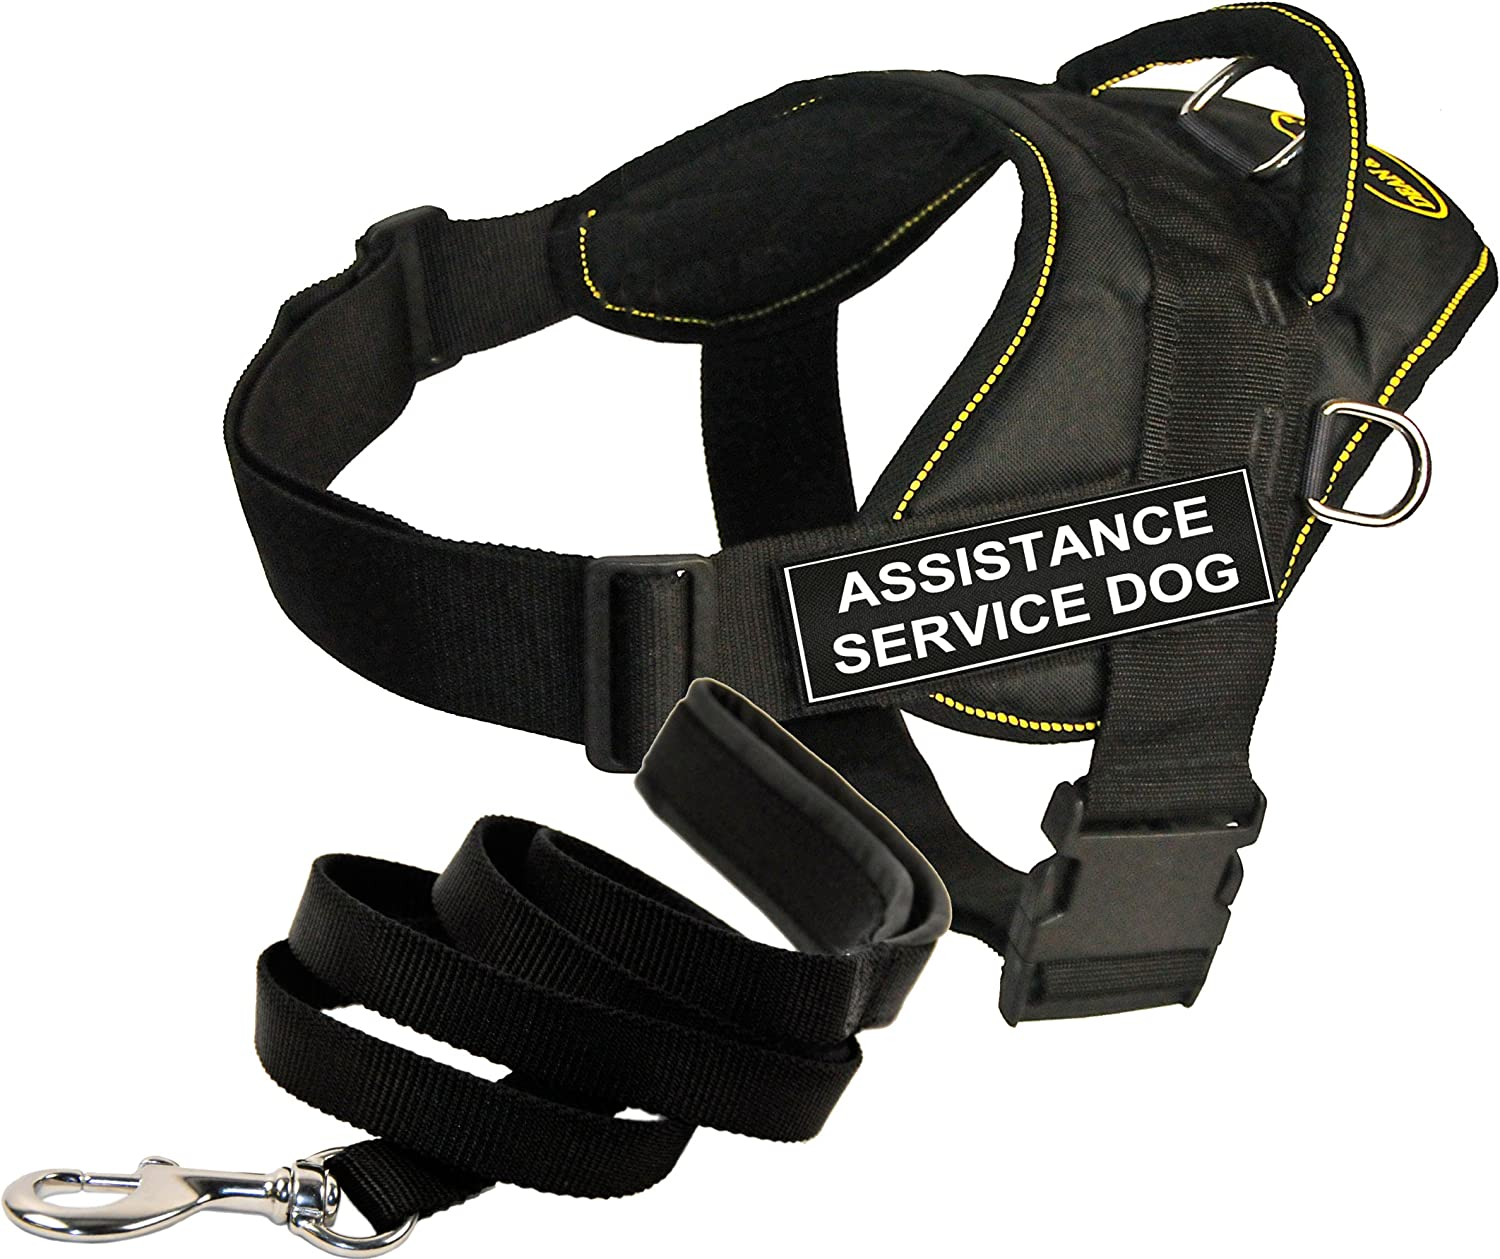 Dean and Tyler Bundle  One DT Fun Works Harness, Assistance Service Dog, Yellow Trim, Medium + One Padded Puppy Leash, 6 FT Stainless Snap  Black